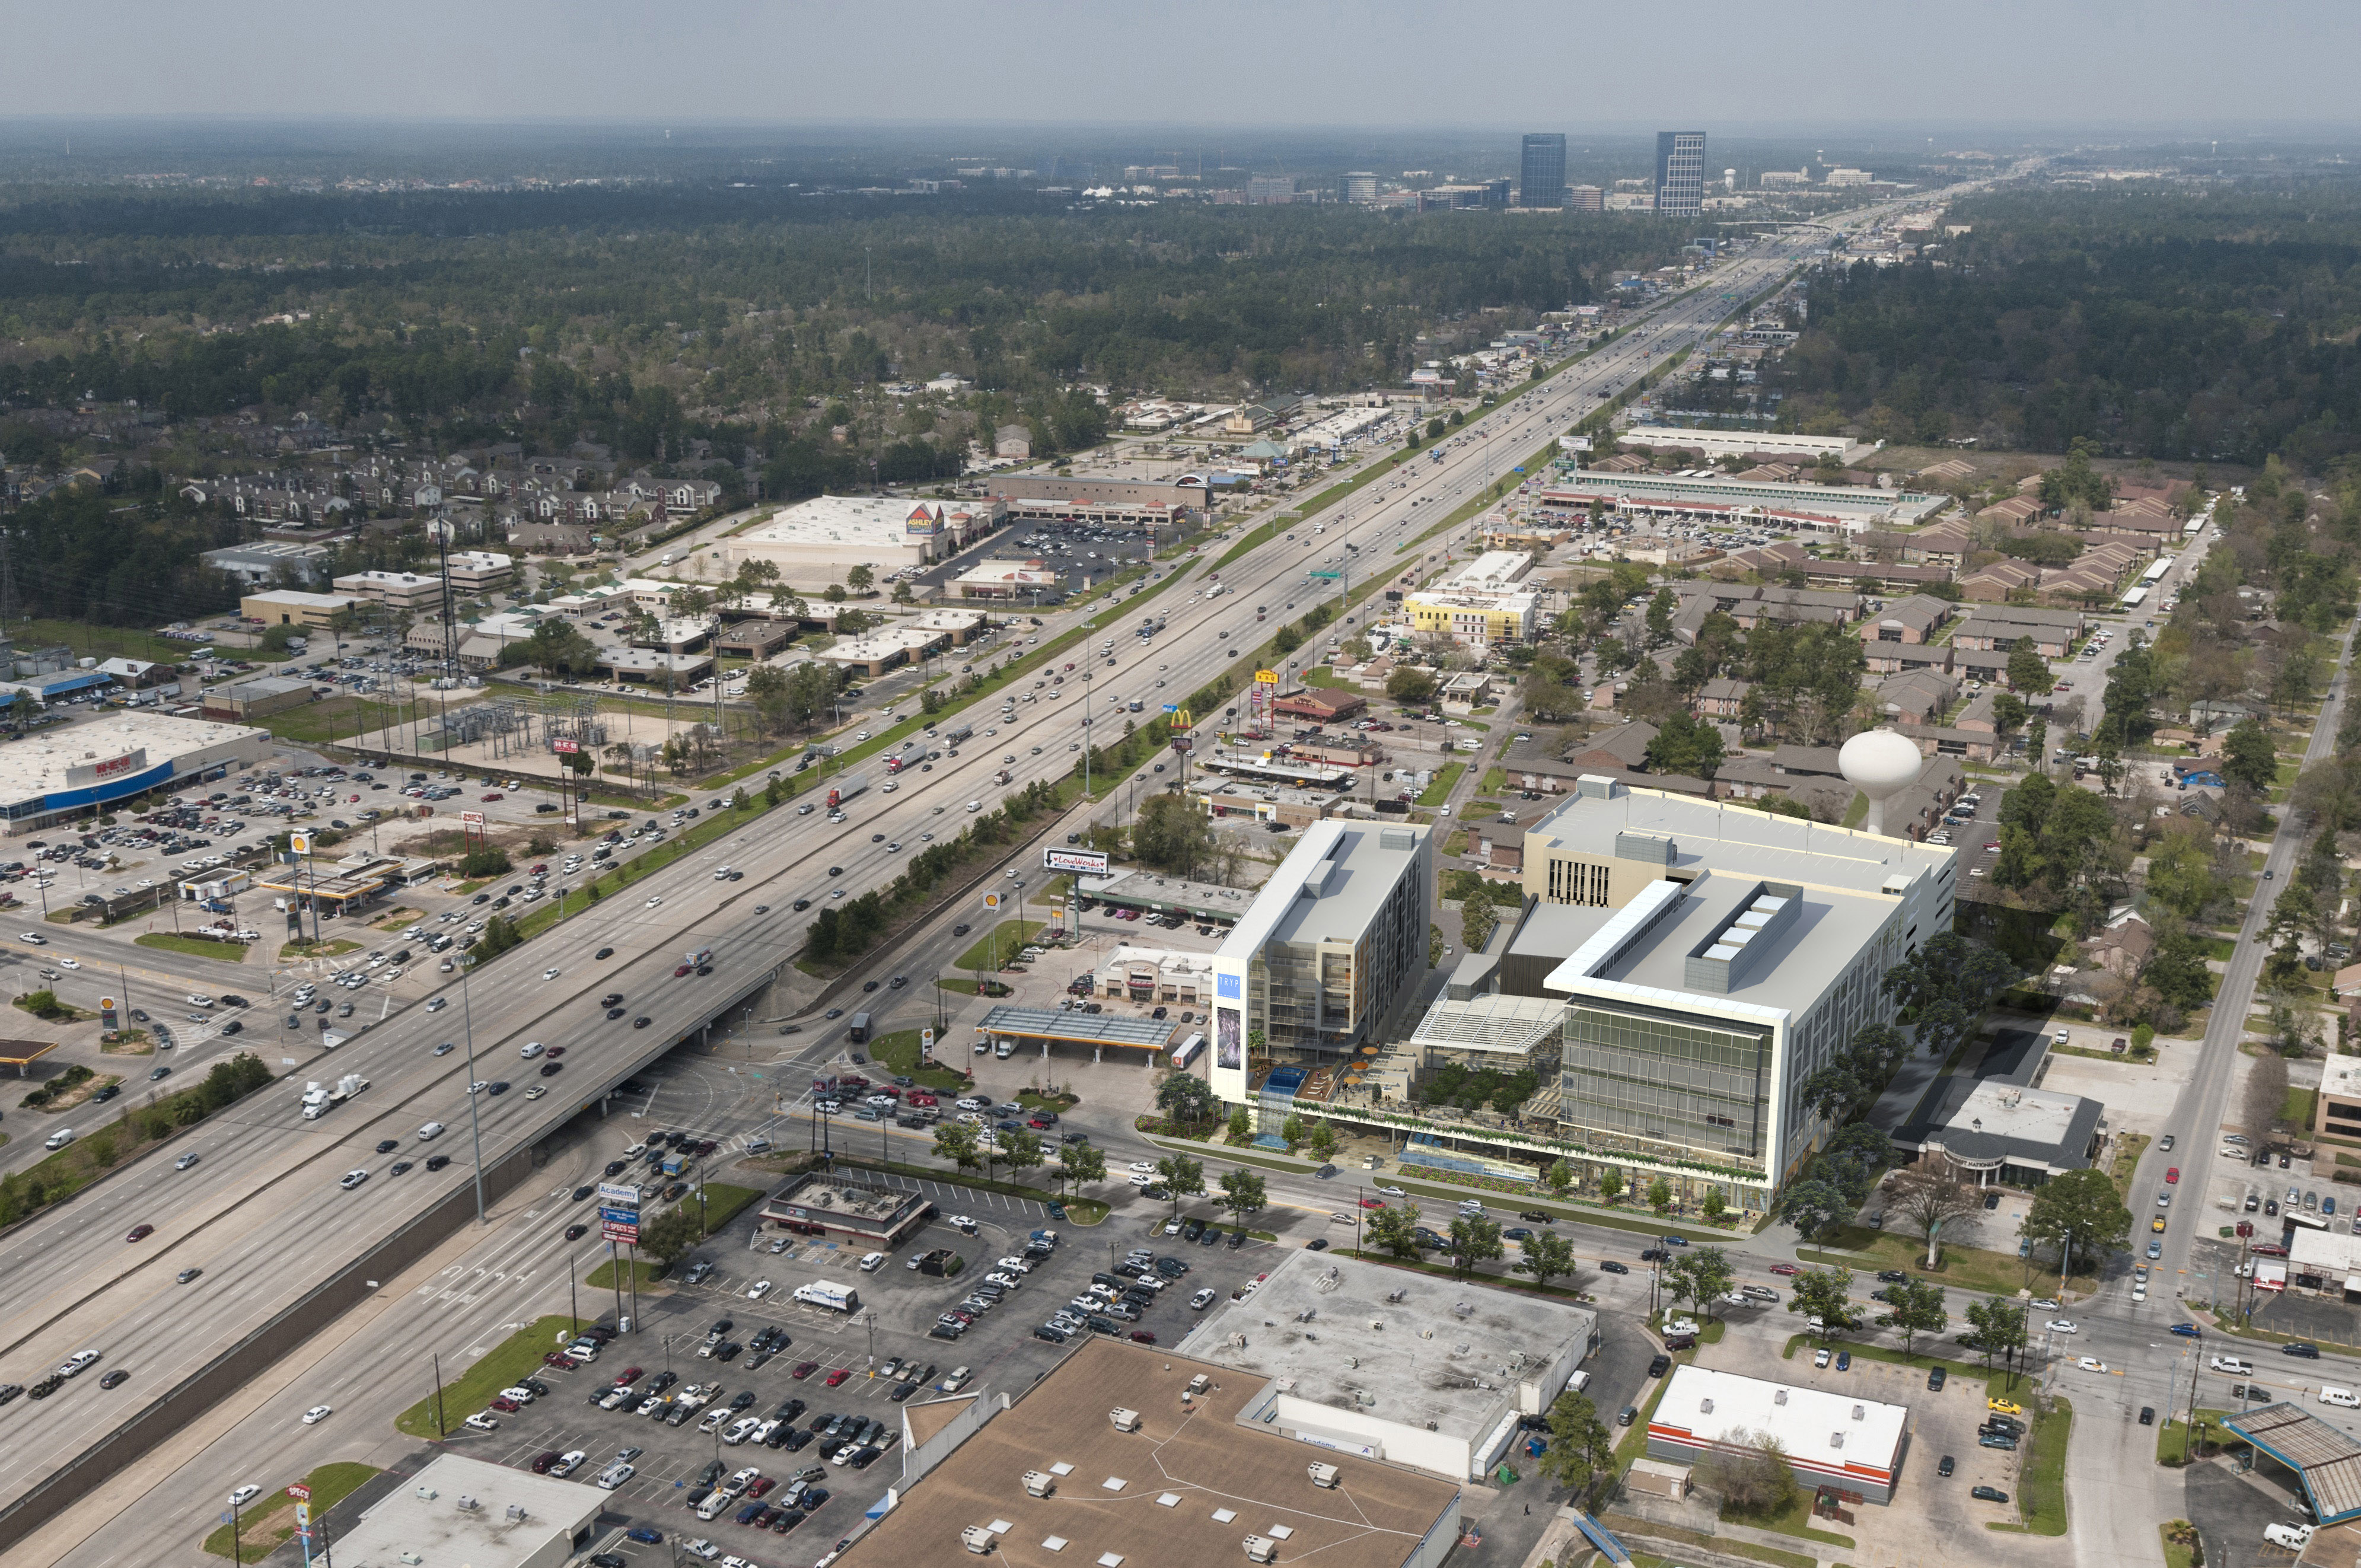 Woodlands-Northgate-Drone-Photo-Overlay_